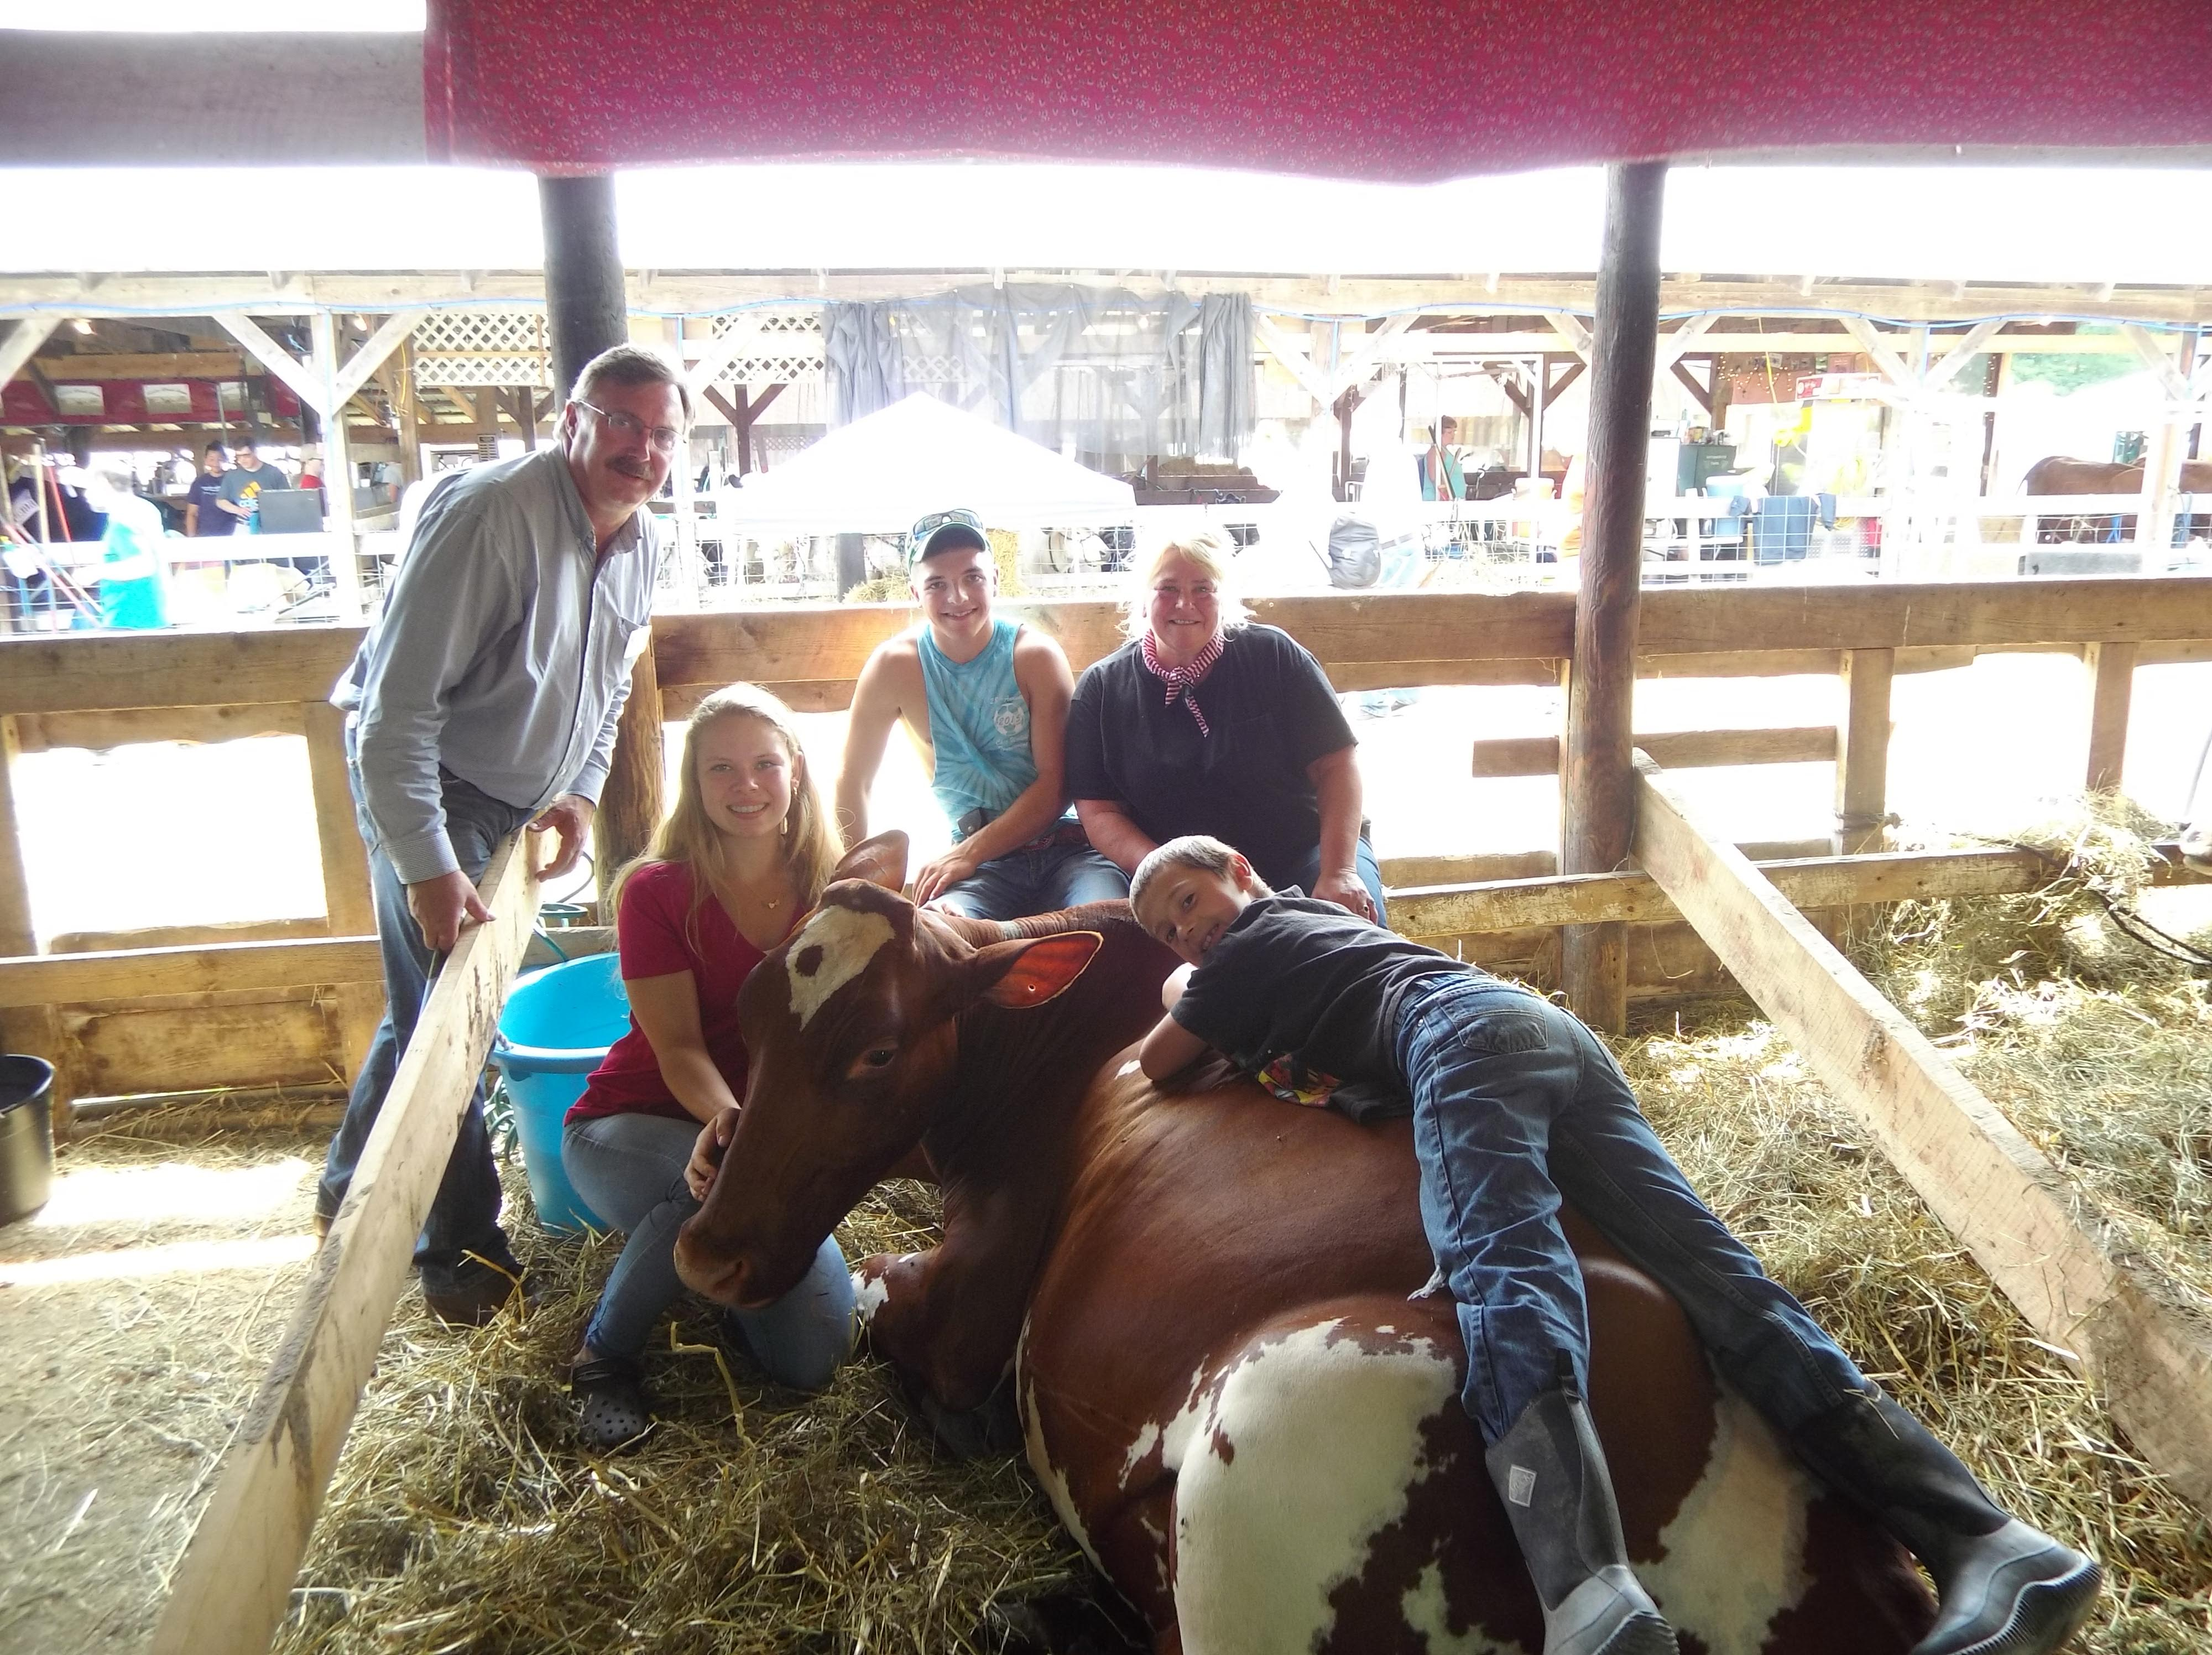 &nbsp;(Left to right): Assemblyman Brian Miller, Alexi Baran, Payton Stirone, Shelly Schaffer <br><br>(Front &ndash; on cow): Jonathan Latour<br />&nbsp;